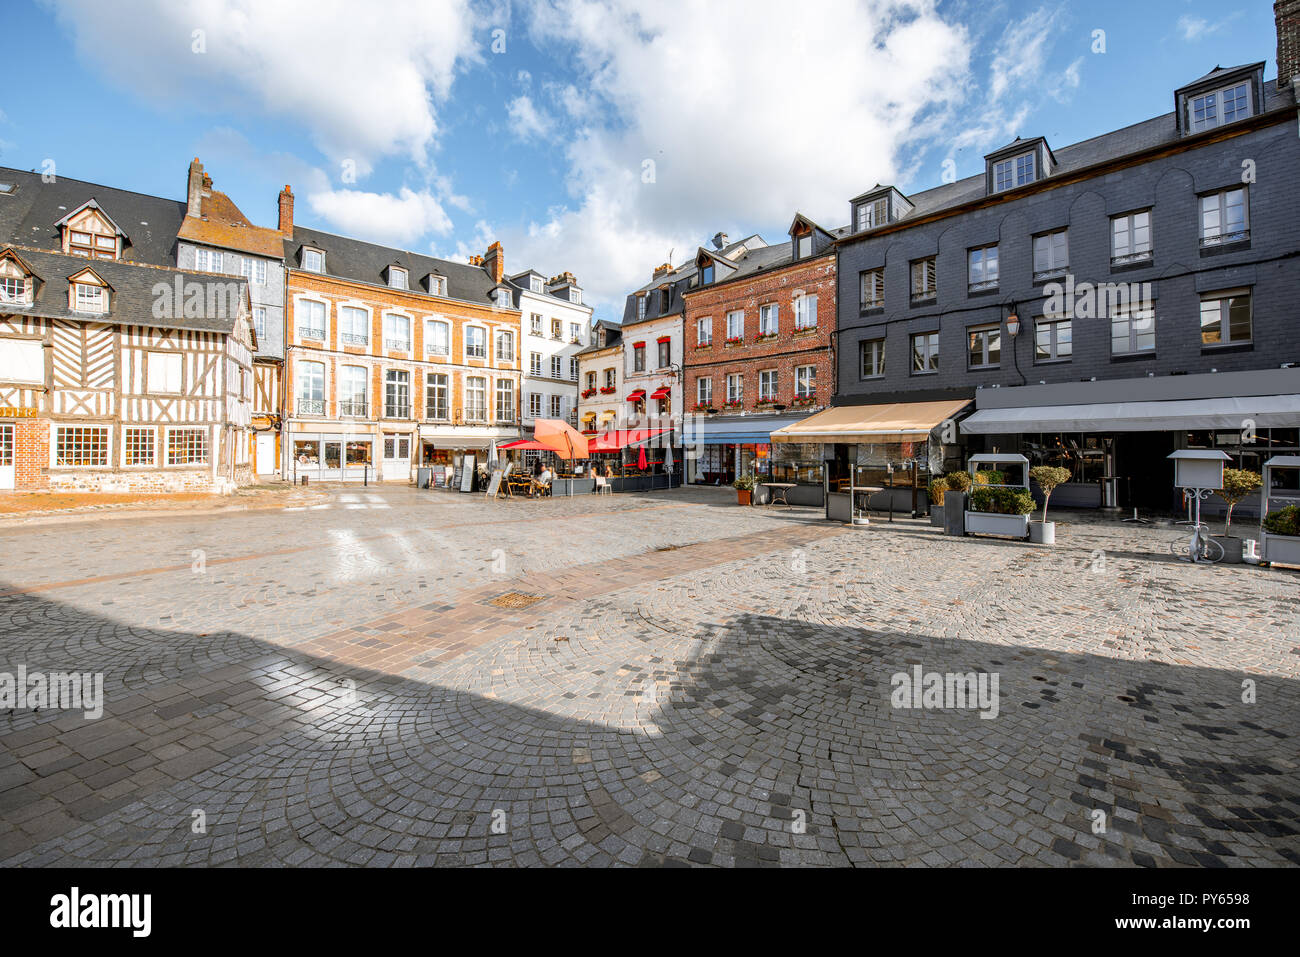 Beautiful facades of the old buildings in the central square in Honfleur, famous french town in Normandy - Stock Image